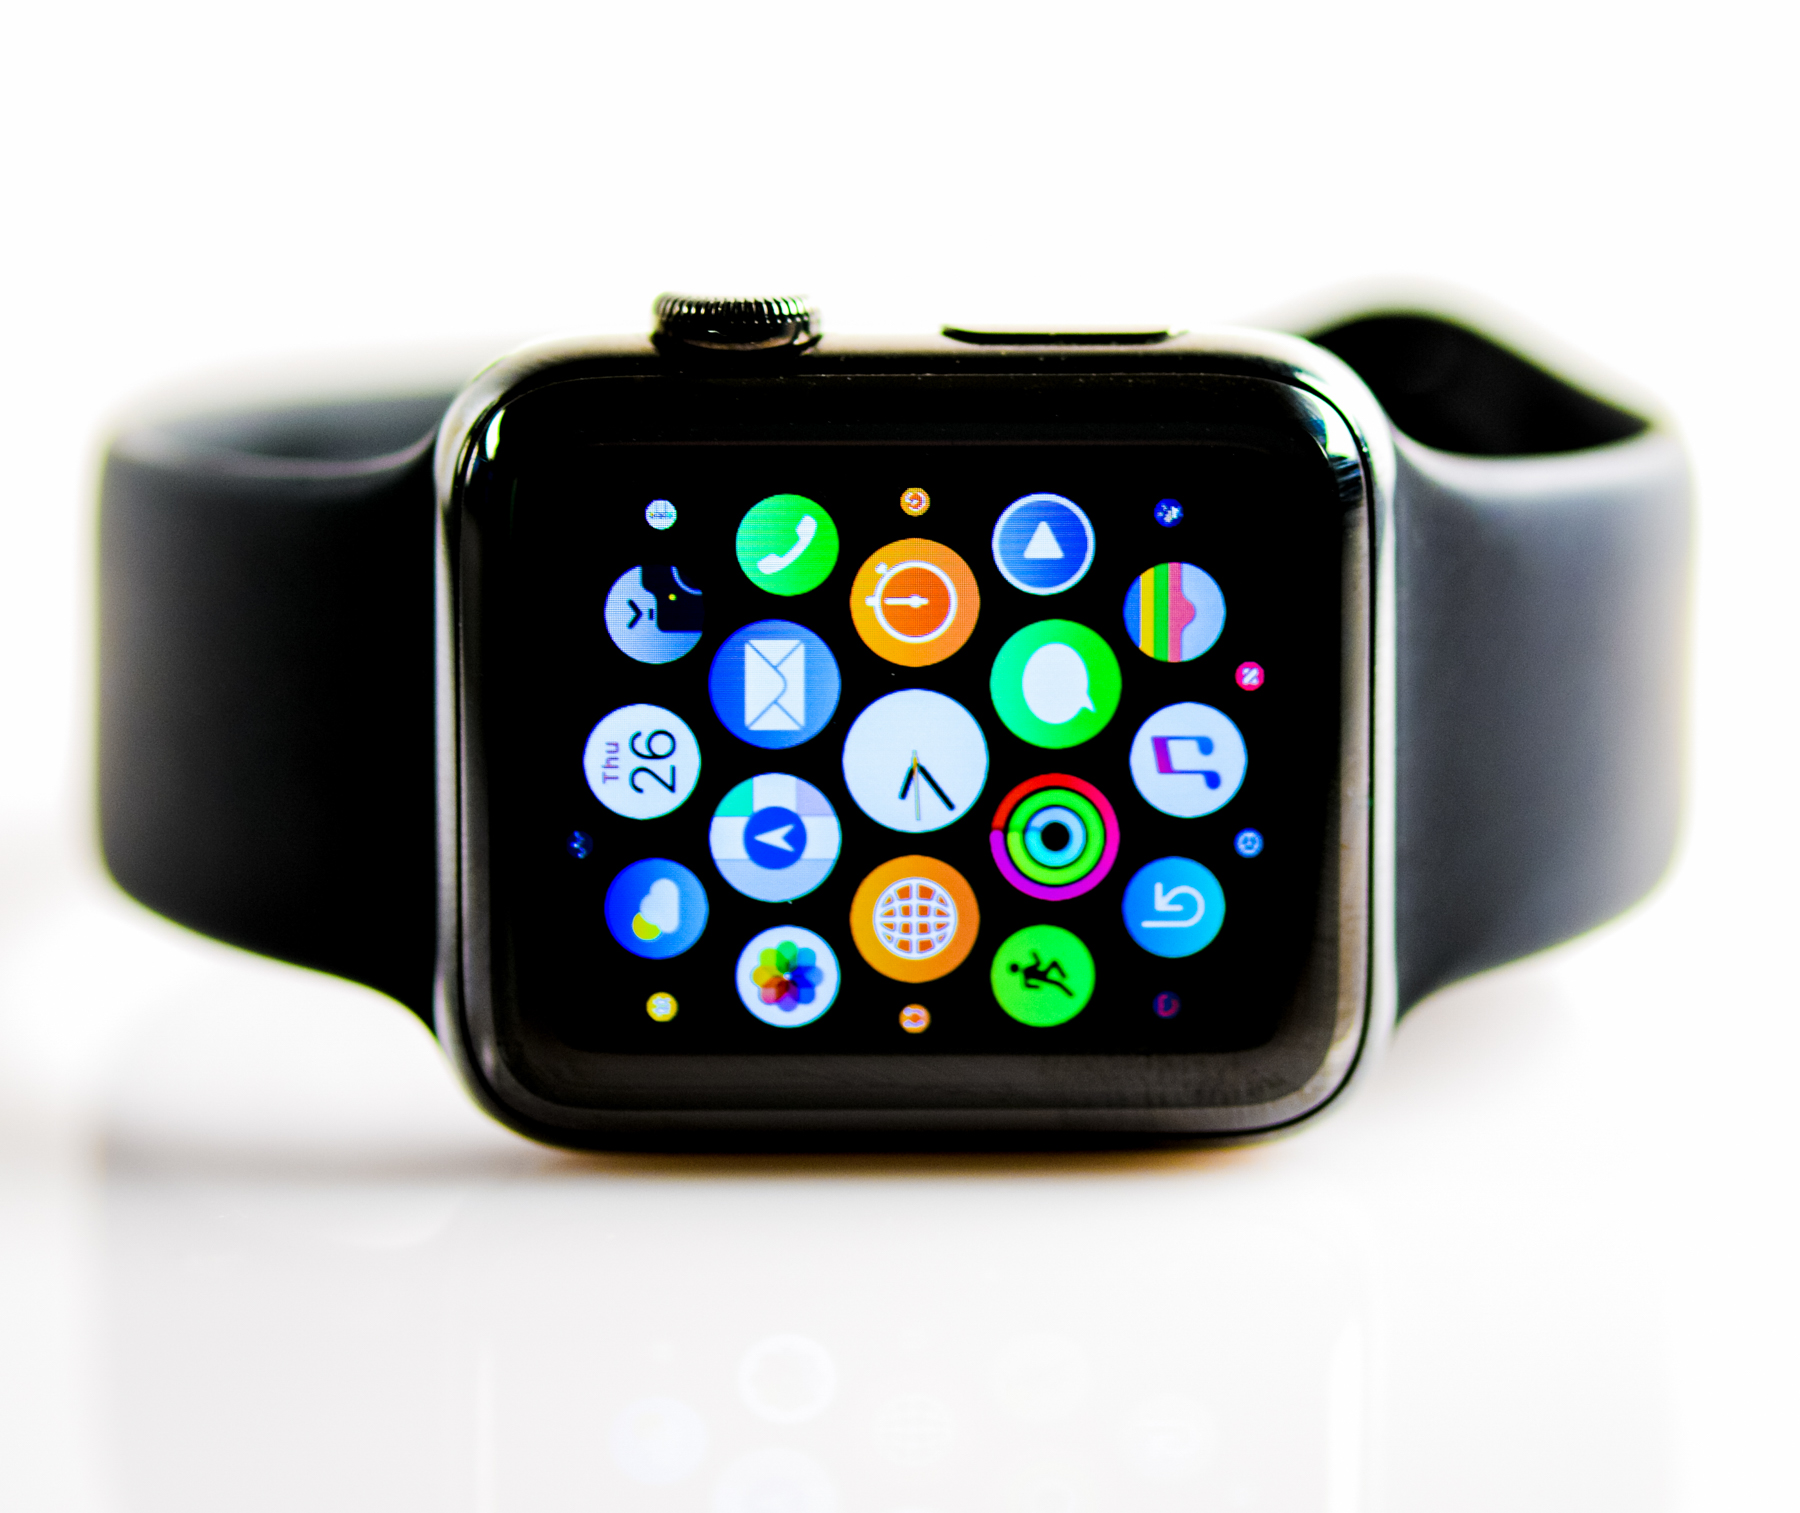 Apple Watch Product Photography captured by TOMO Pictures in Charleston, SC